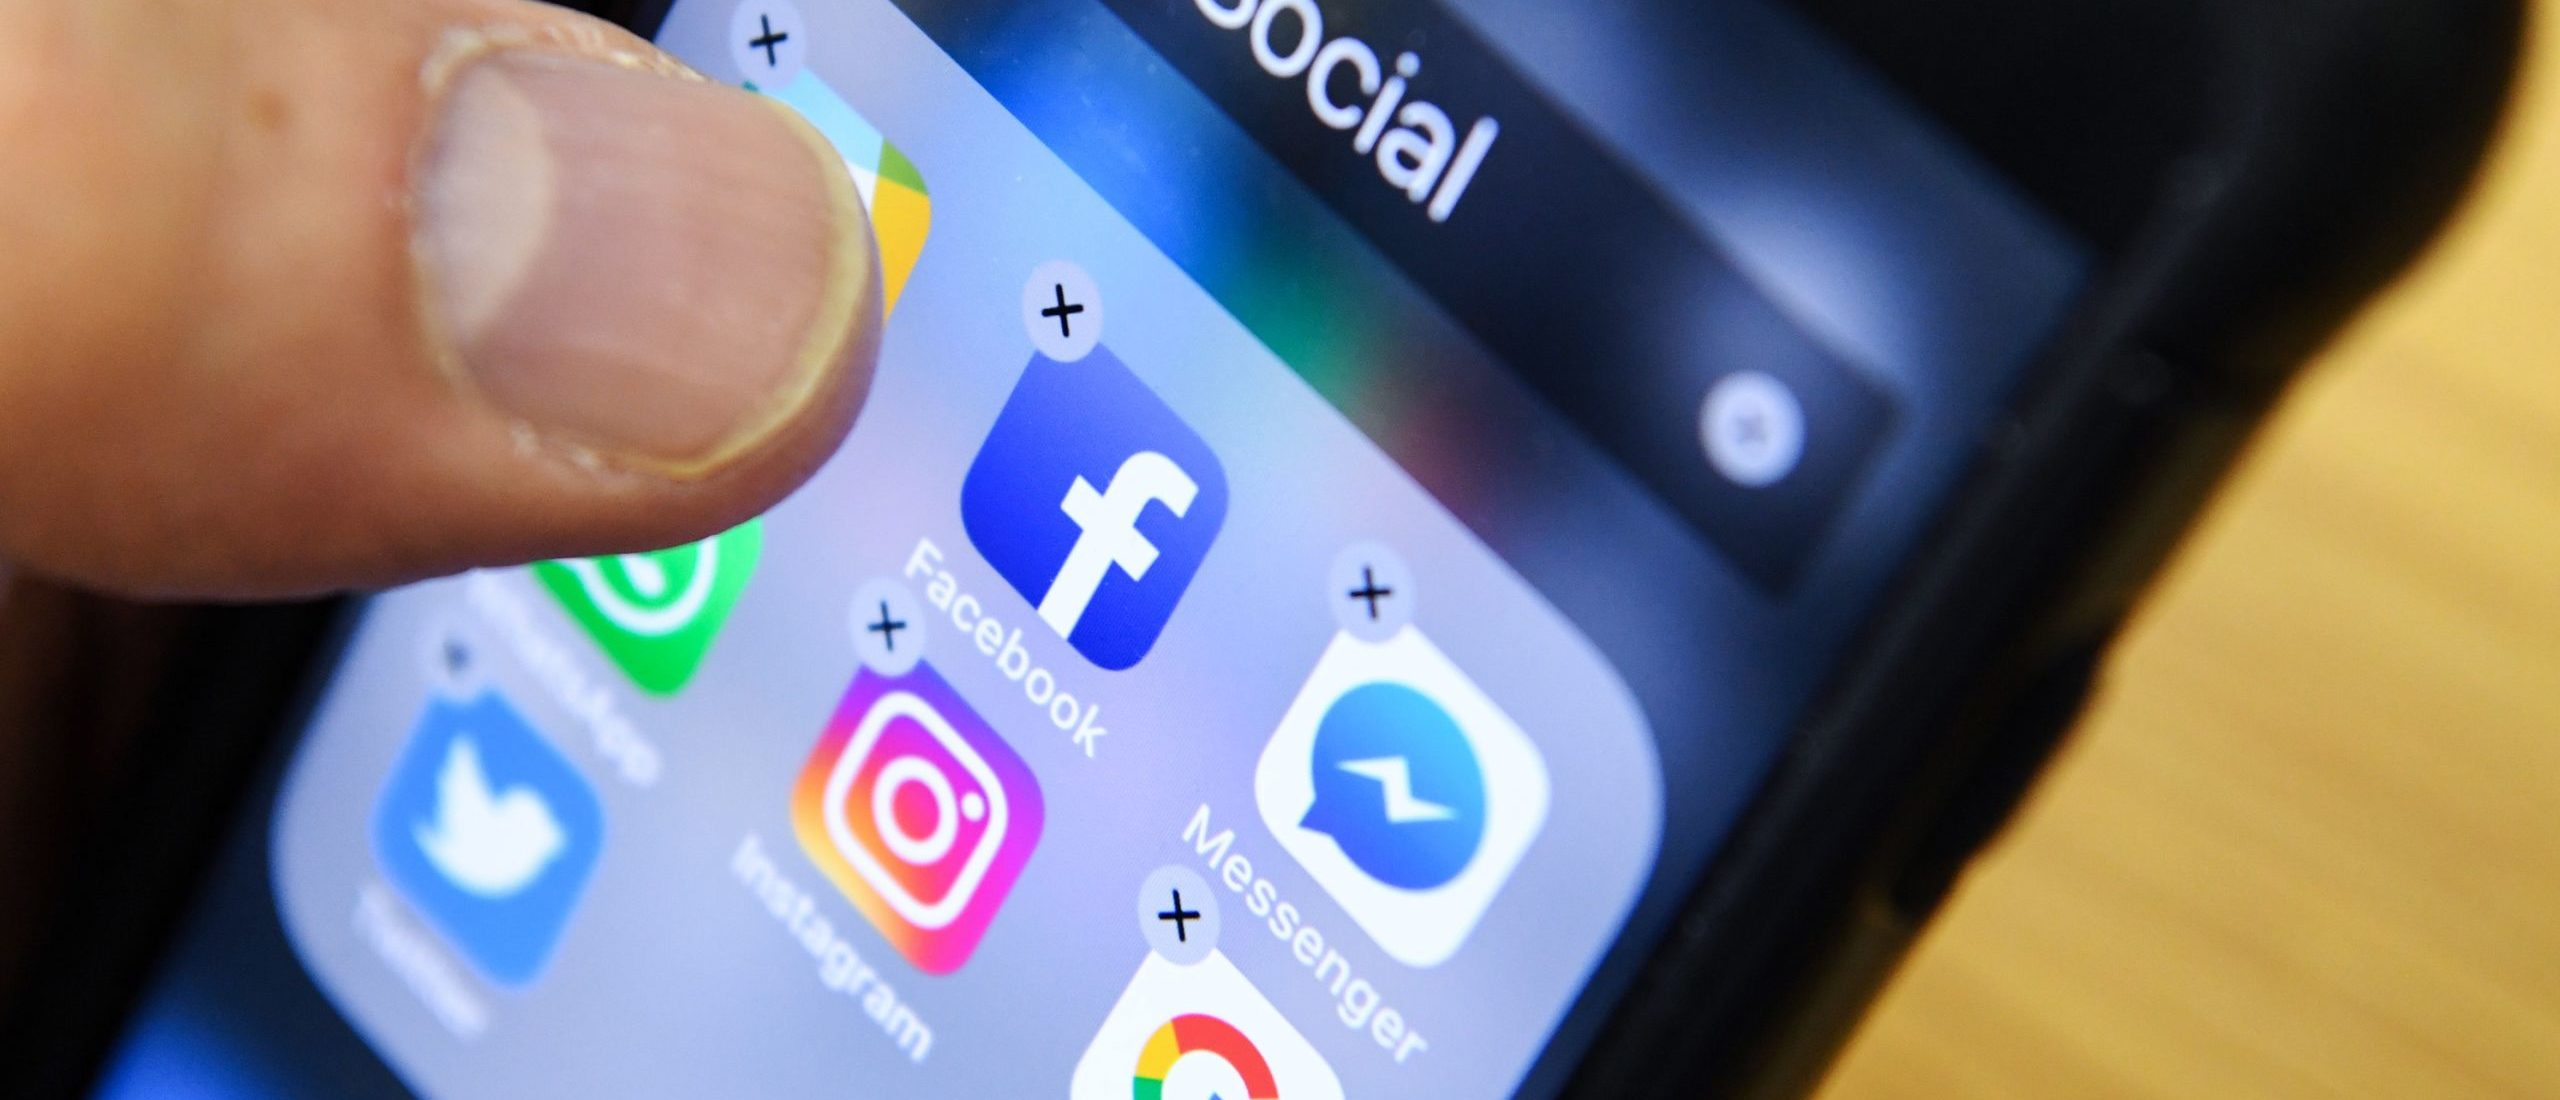 A man holds a smart phone with the icons for the social networking apps Facebook, Instagram and Twitter seen on the screen in Moscow on March 23, 2018. (KIRILL KUDRYAVTSEV/AFP via Getty Images)